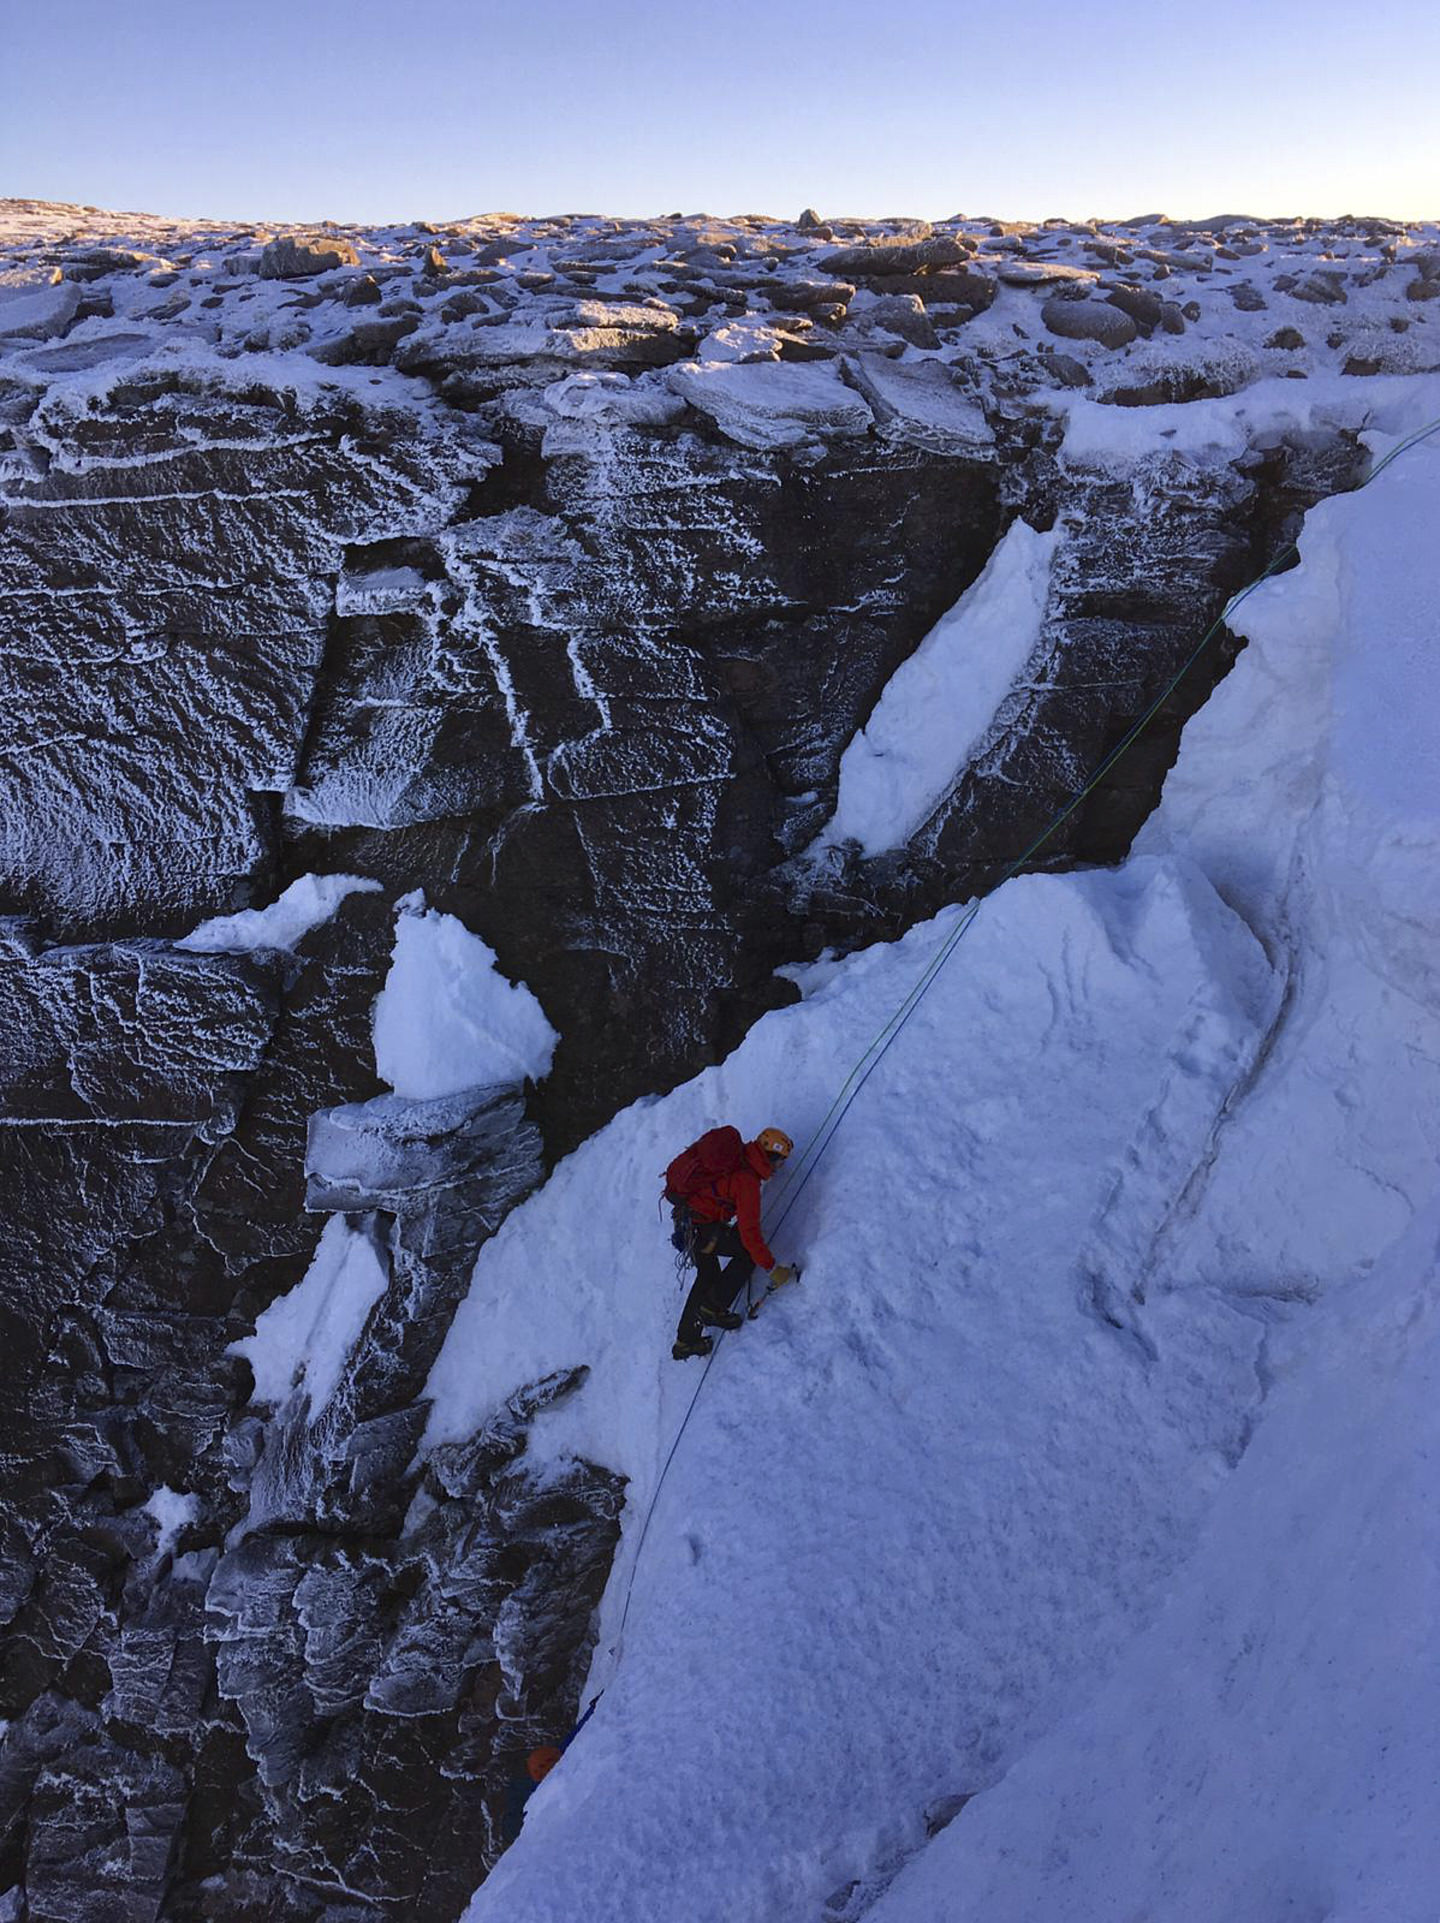 Roped up, a climber presses on up the corrie. Lifting ice axe and ready to top out into the morning sun.